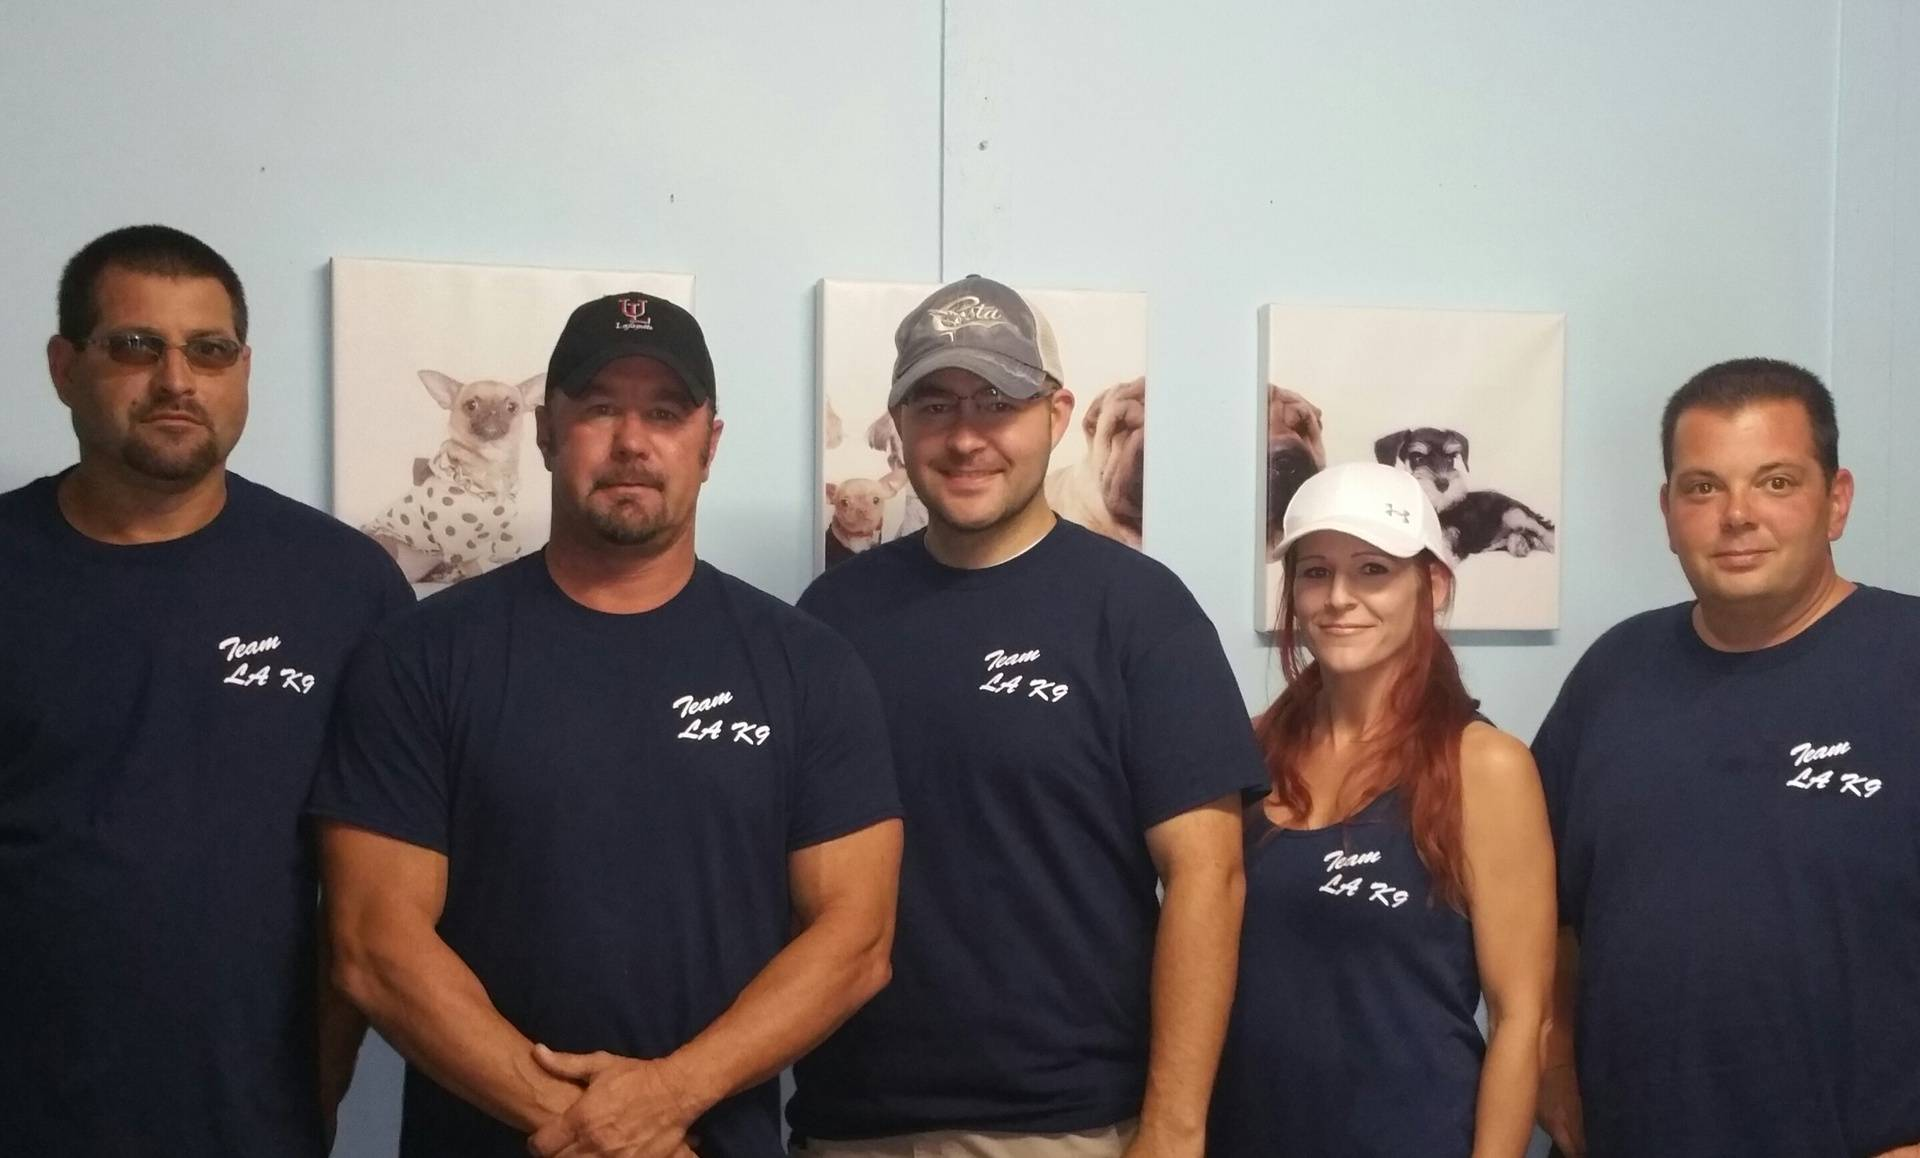 Some of the staff at Louisiana K-9